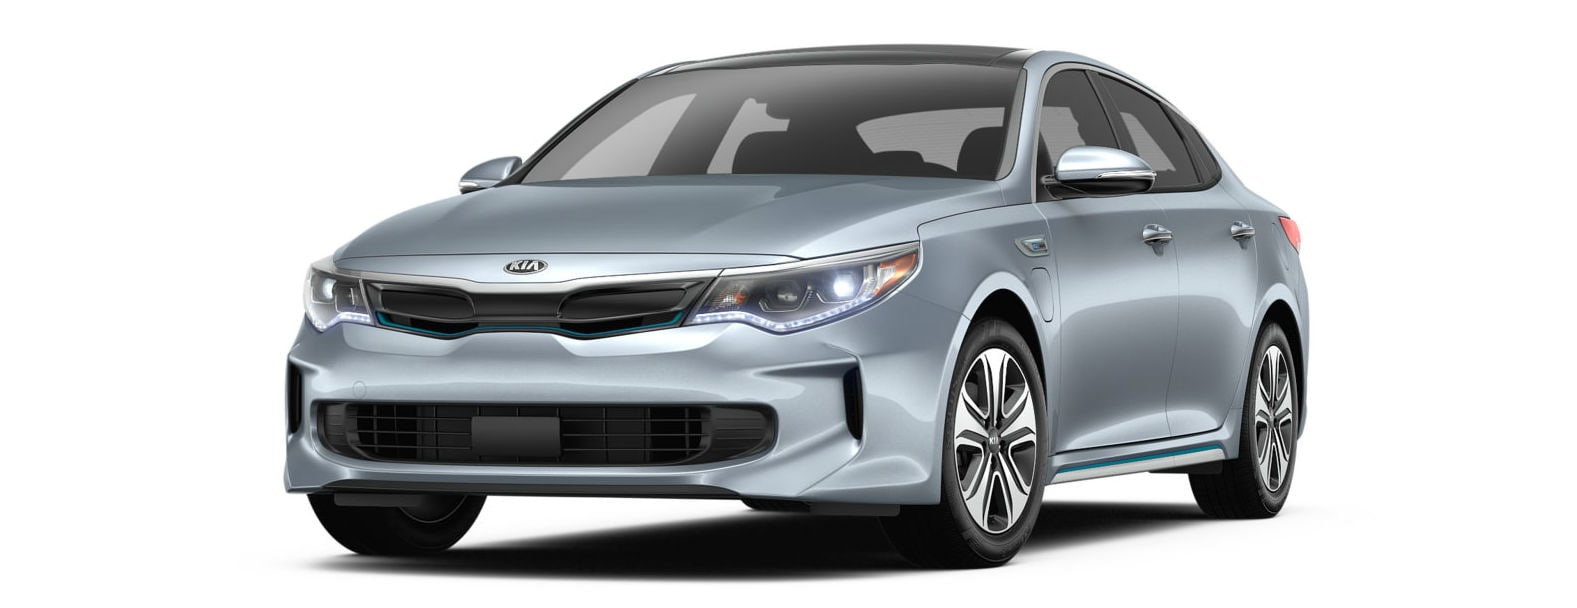 optima sportswagon pictures wallpaper information specs kia